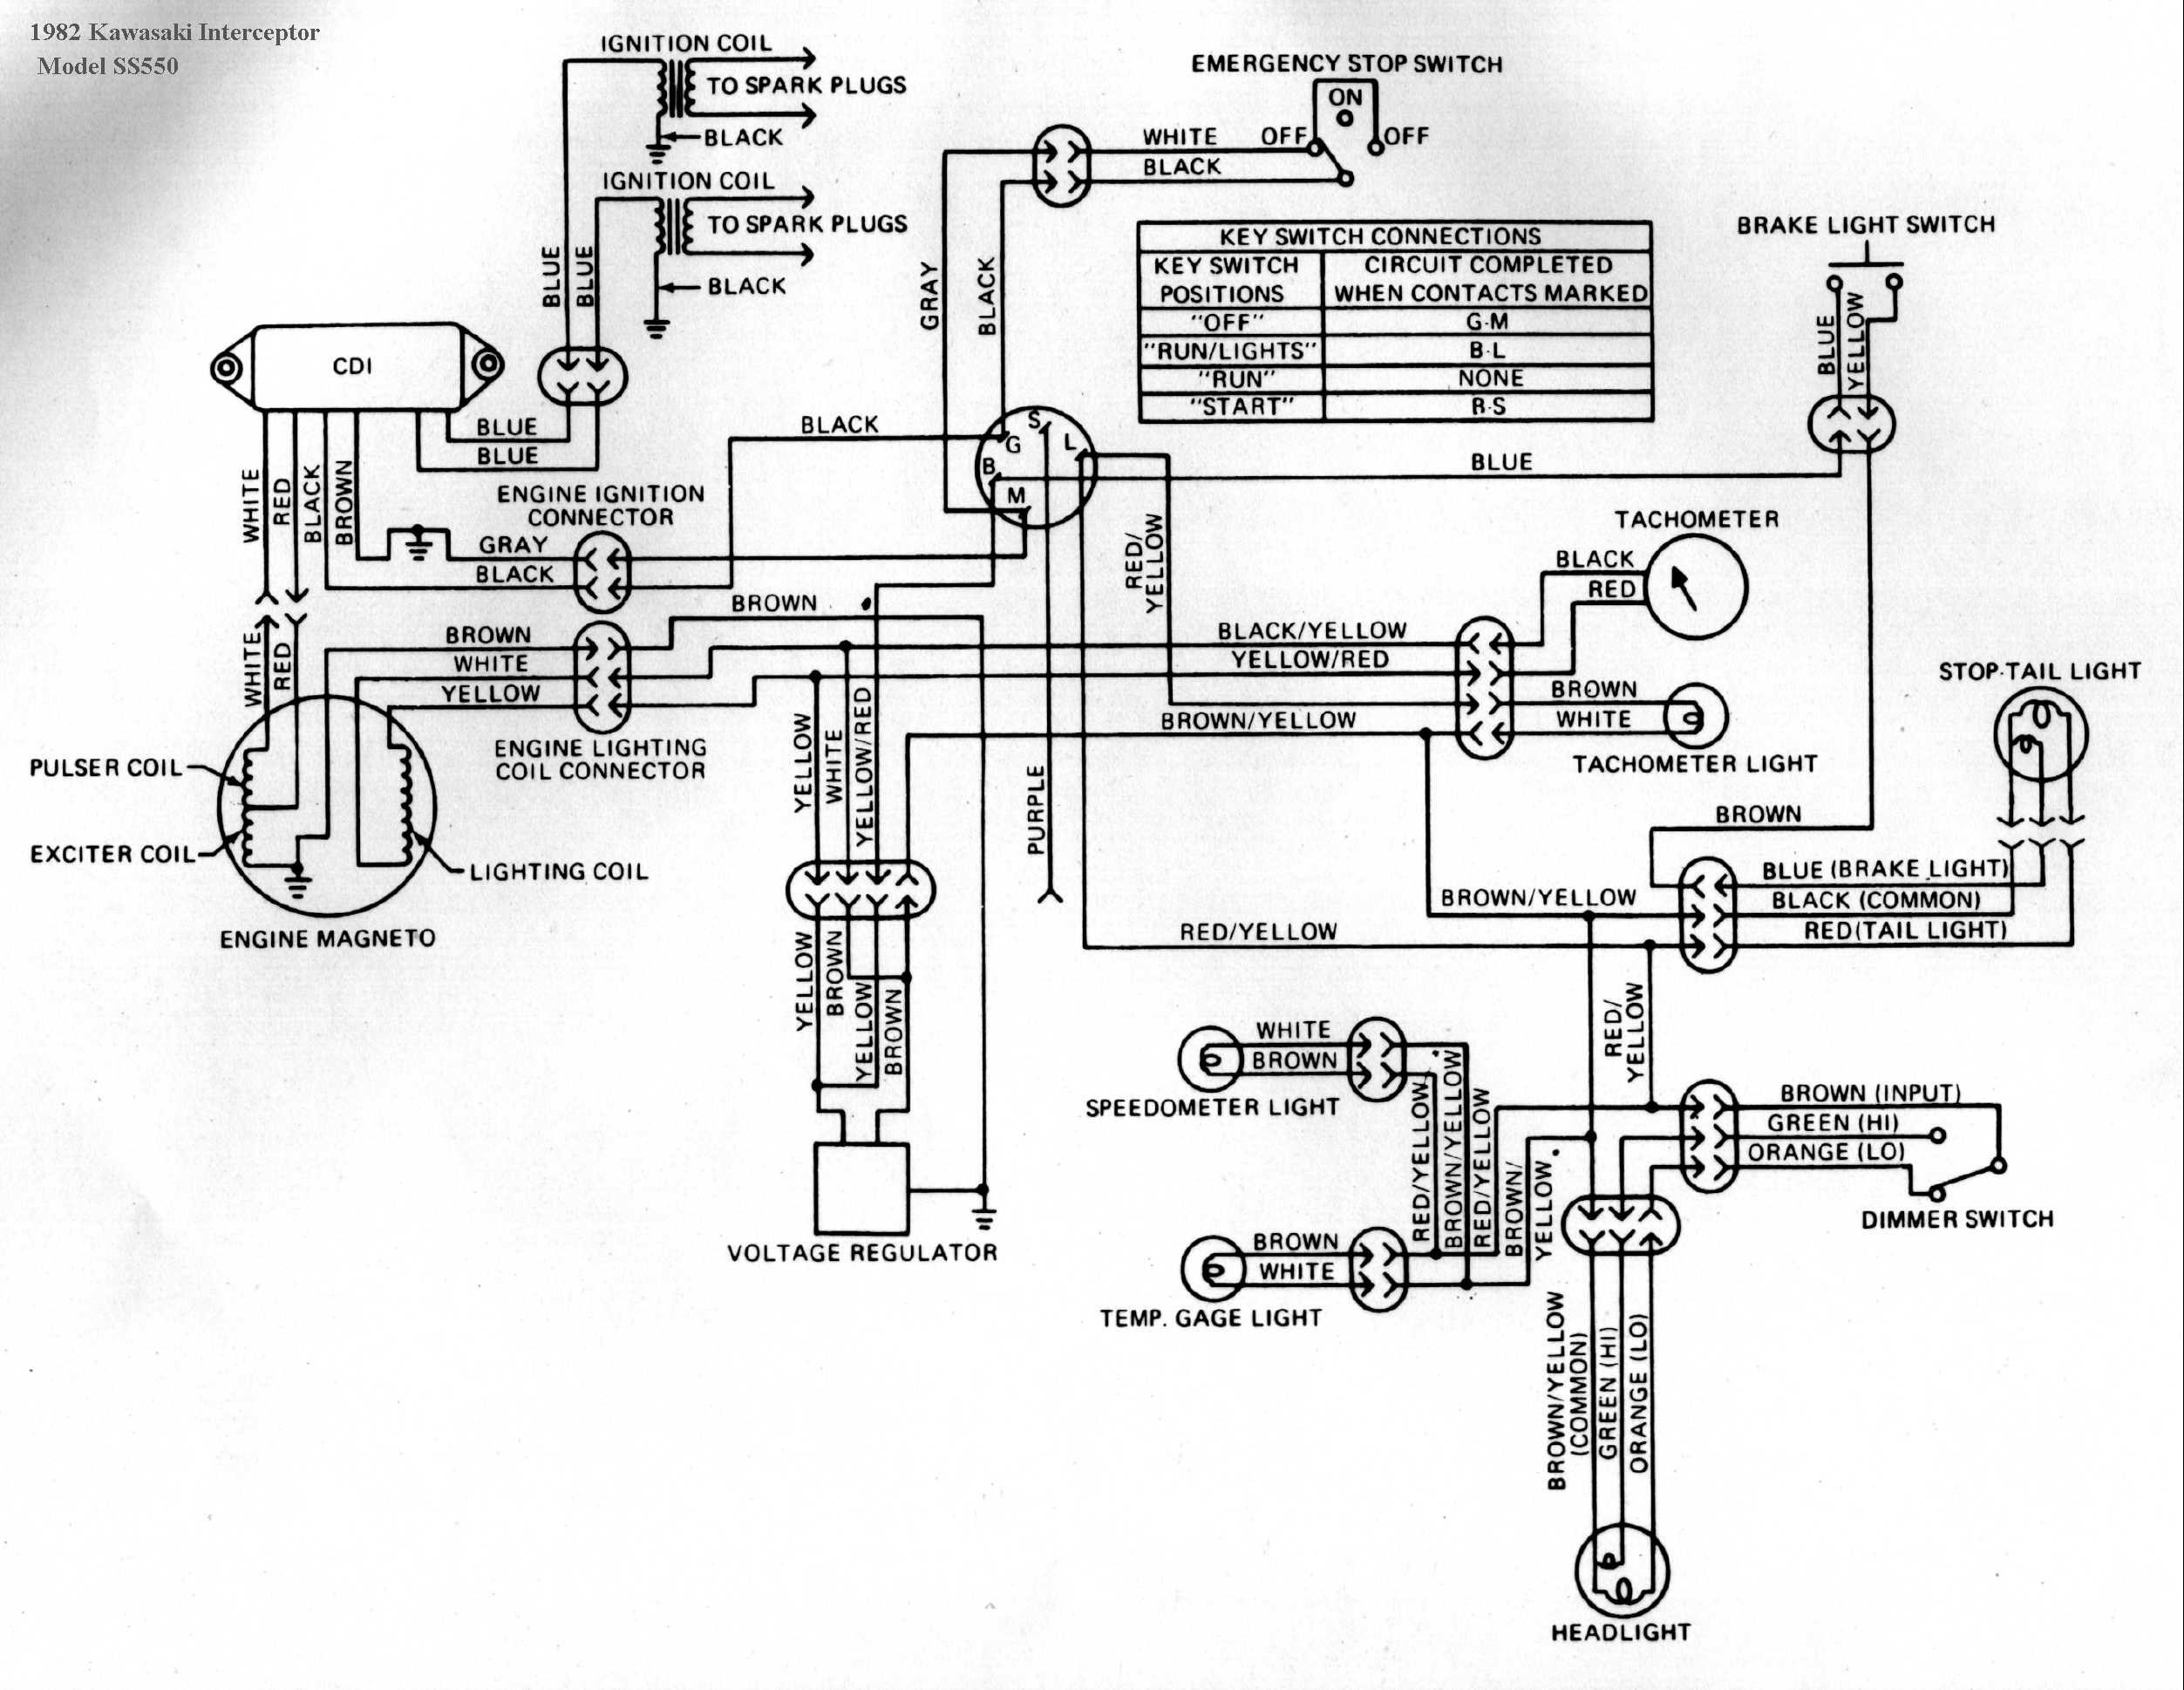 ss550 kawasaki snowmobile wiring diagrams wiring diagram ski doo snowmobile at gsmx.co